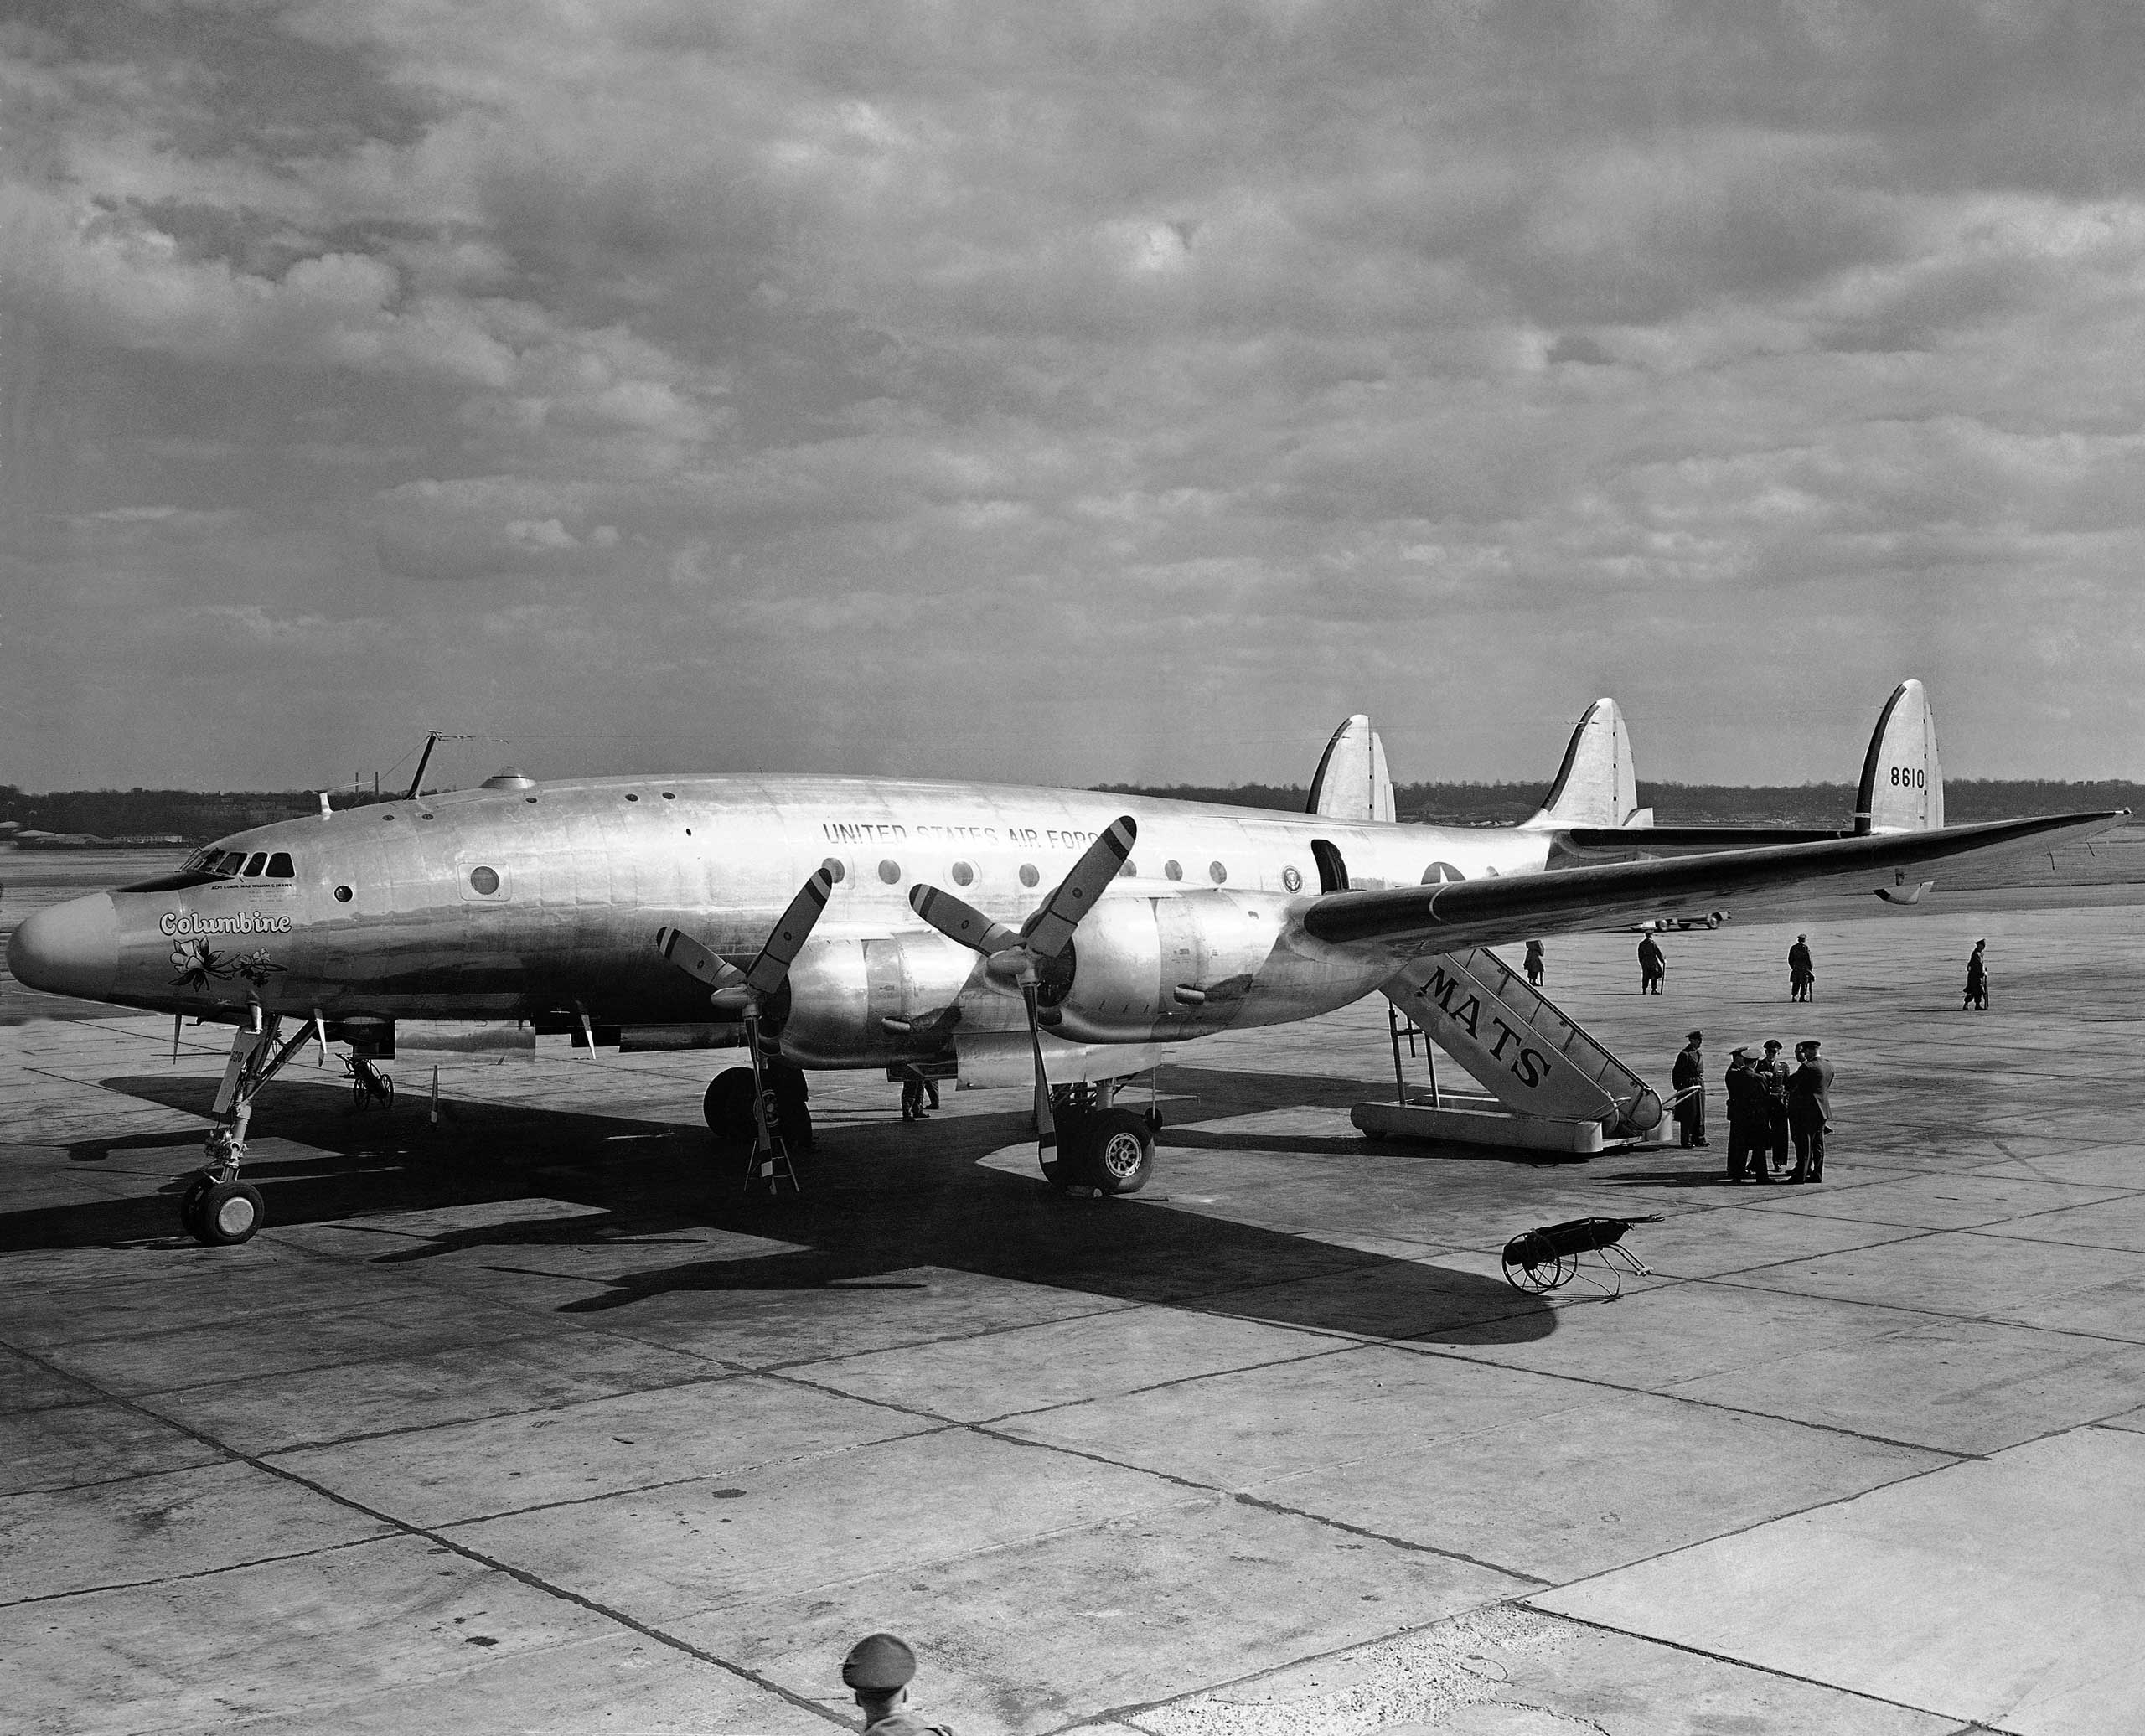 President Eisenhower added <i>Columbine II</i>, a Lockheed C-121 Super Constellation, to the Presidential fleet in 1953.